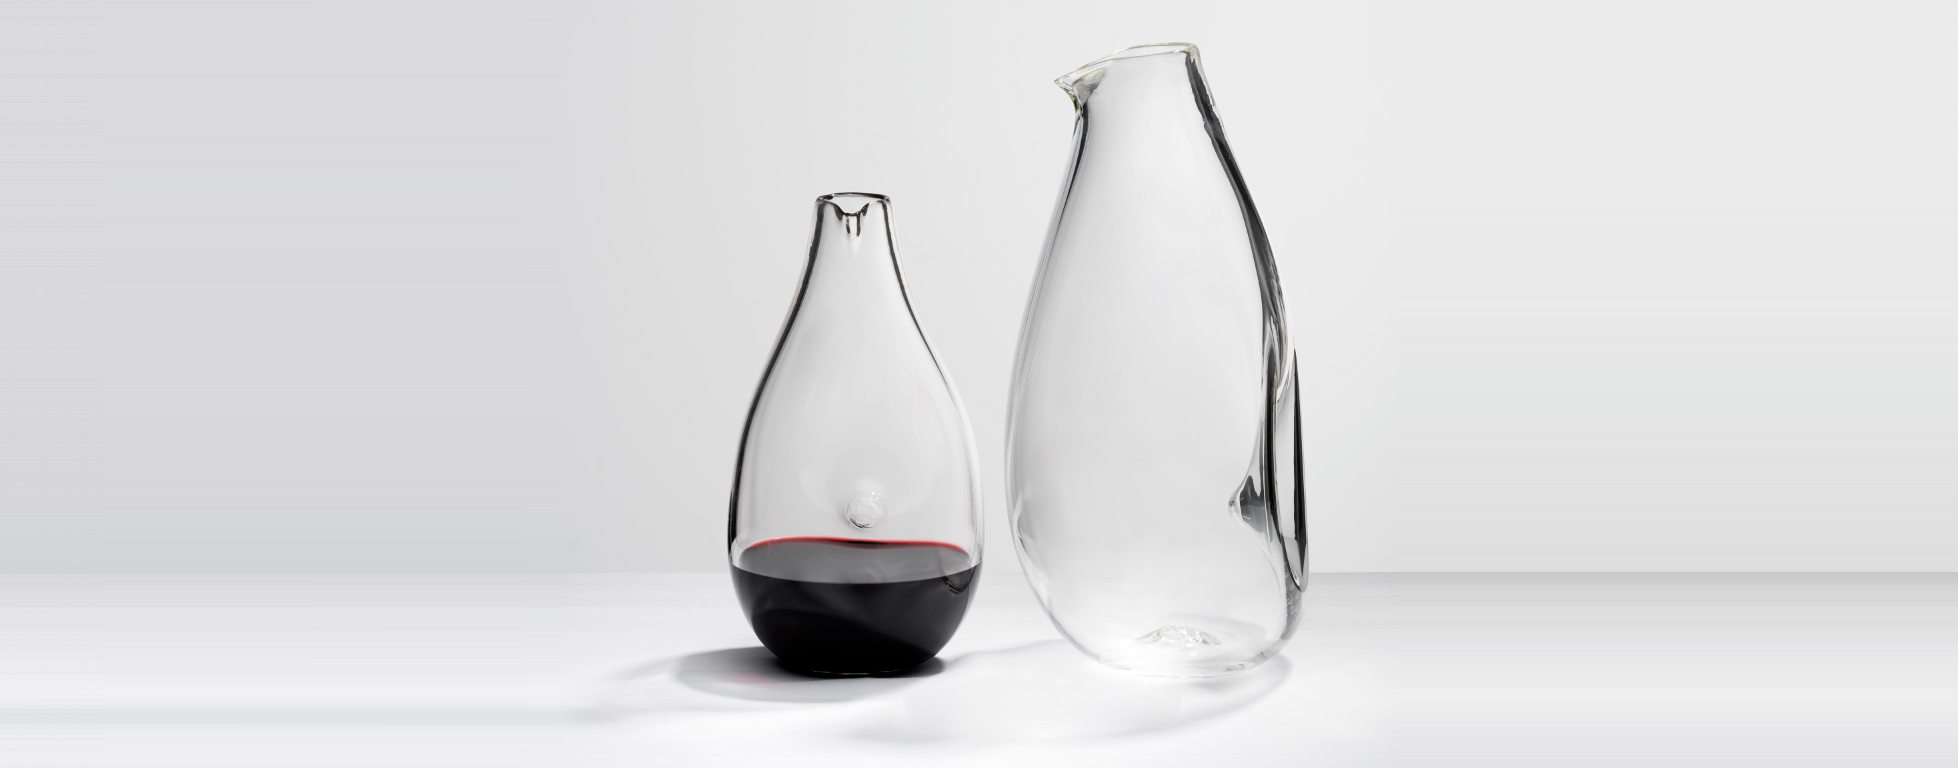 two Penguin decanters